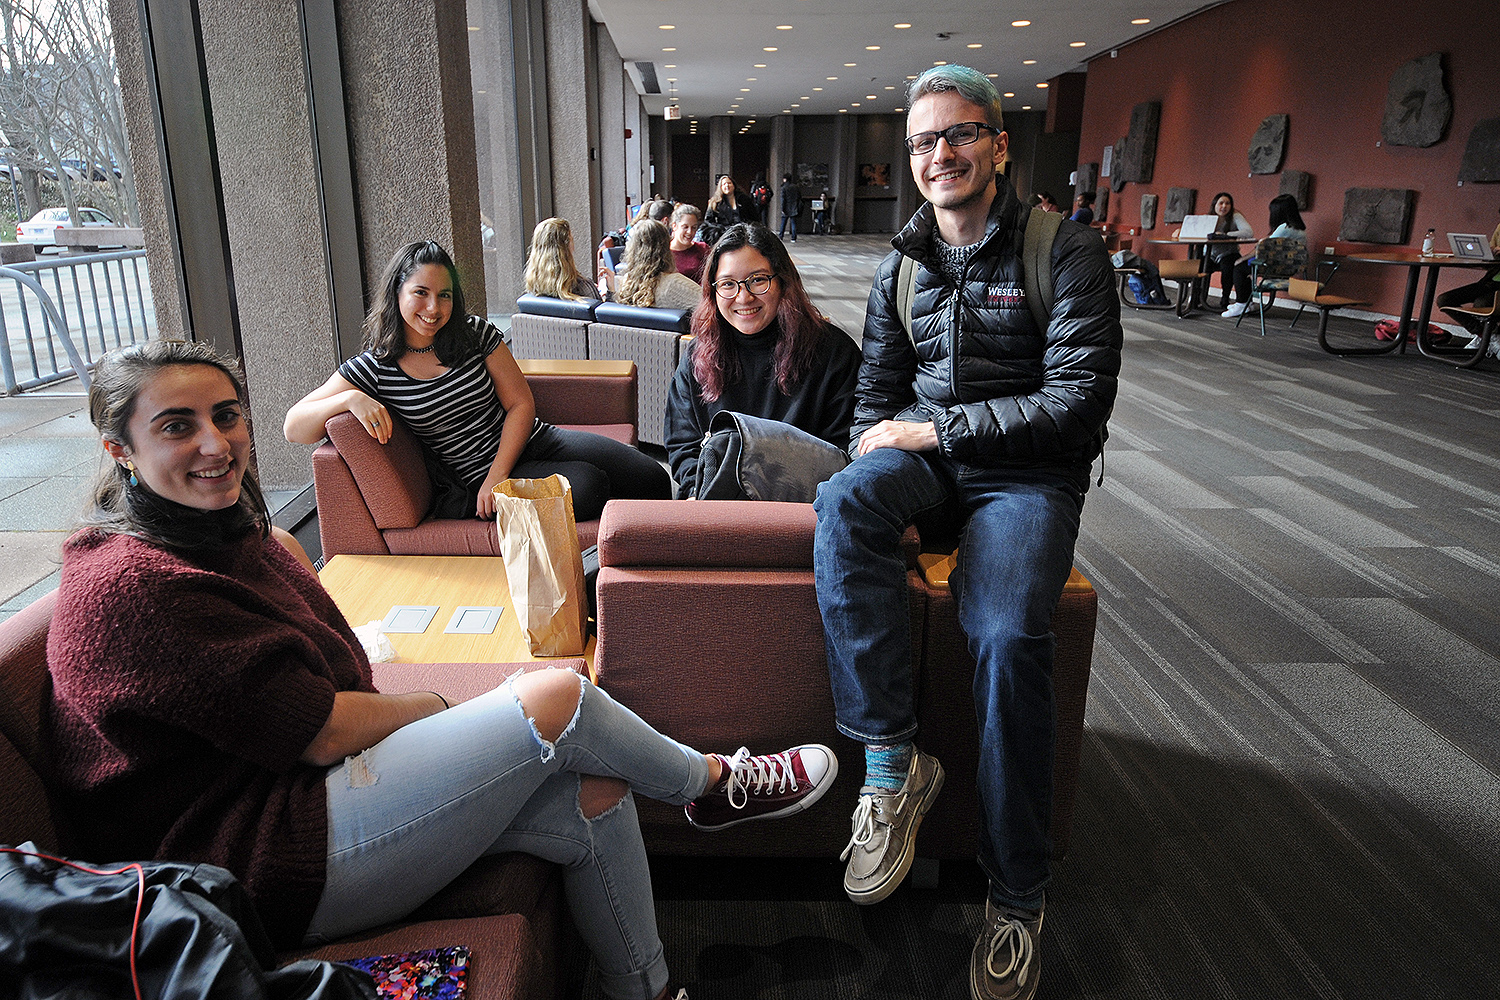 "Classmates Ali Friend '19, Teresa Naval '19, Alexis Jimenee '19 and Daniel Shaheen '19 gathered in Exley Science Center over lunch. Ali, who visited family in Toronto, Canada over Winter Recess, says she missed the Wesleyan squirrels. ""In Canada, the squirrels are black and twice as big as the gray squirrels. They are friendly, too, but not nearly as cute as Wes Squirrels,"" she said."